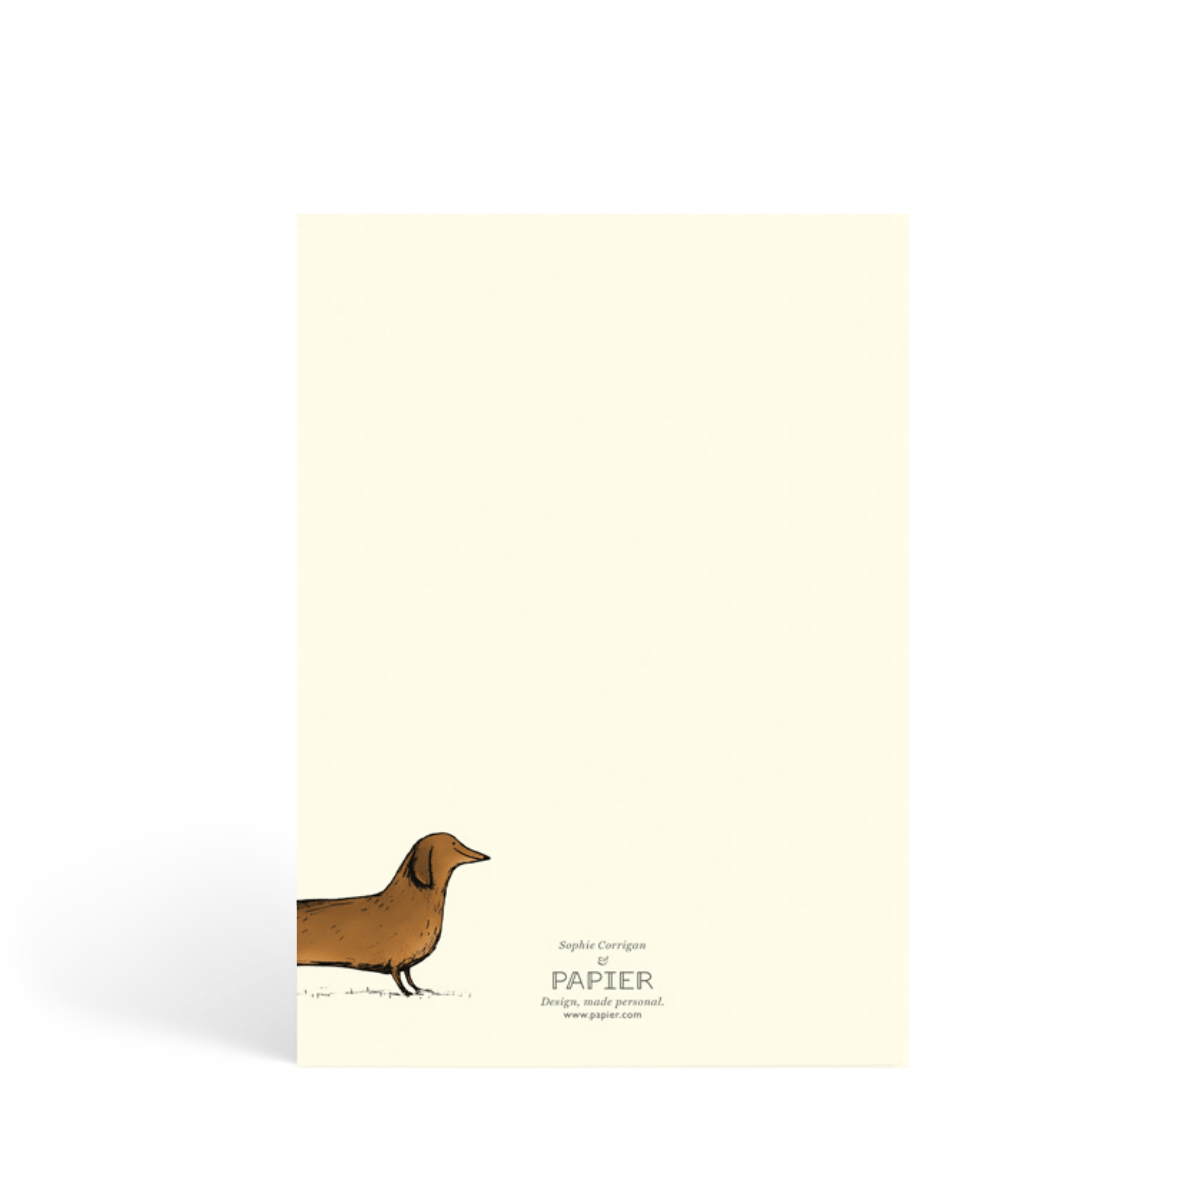 Https%3a%2f%2fwww.papier.com%2fproduct image%2f89765%2f5%2fanatomy of a dachshund 22475 back 1569851650.png?ixlib=rb 1.1